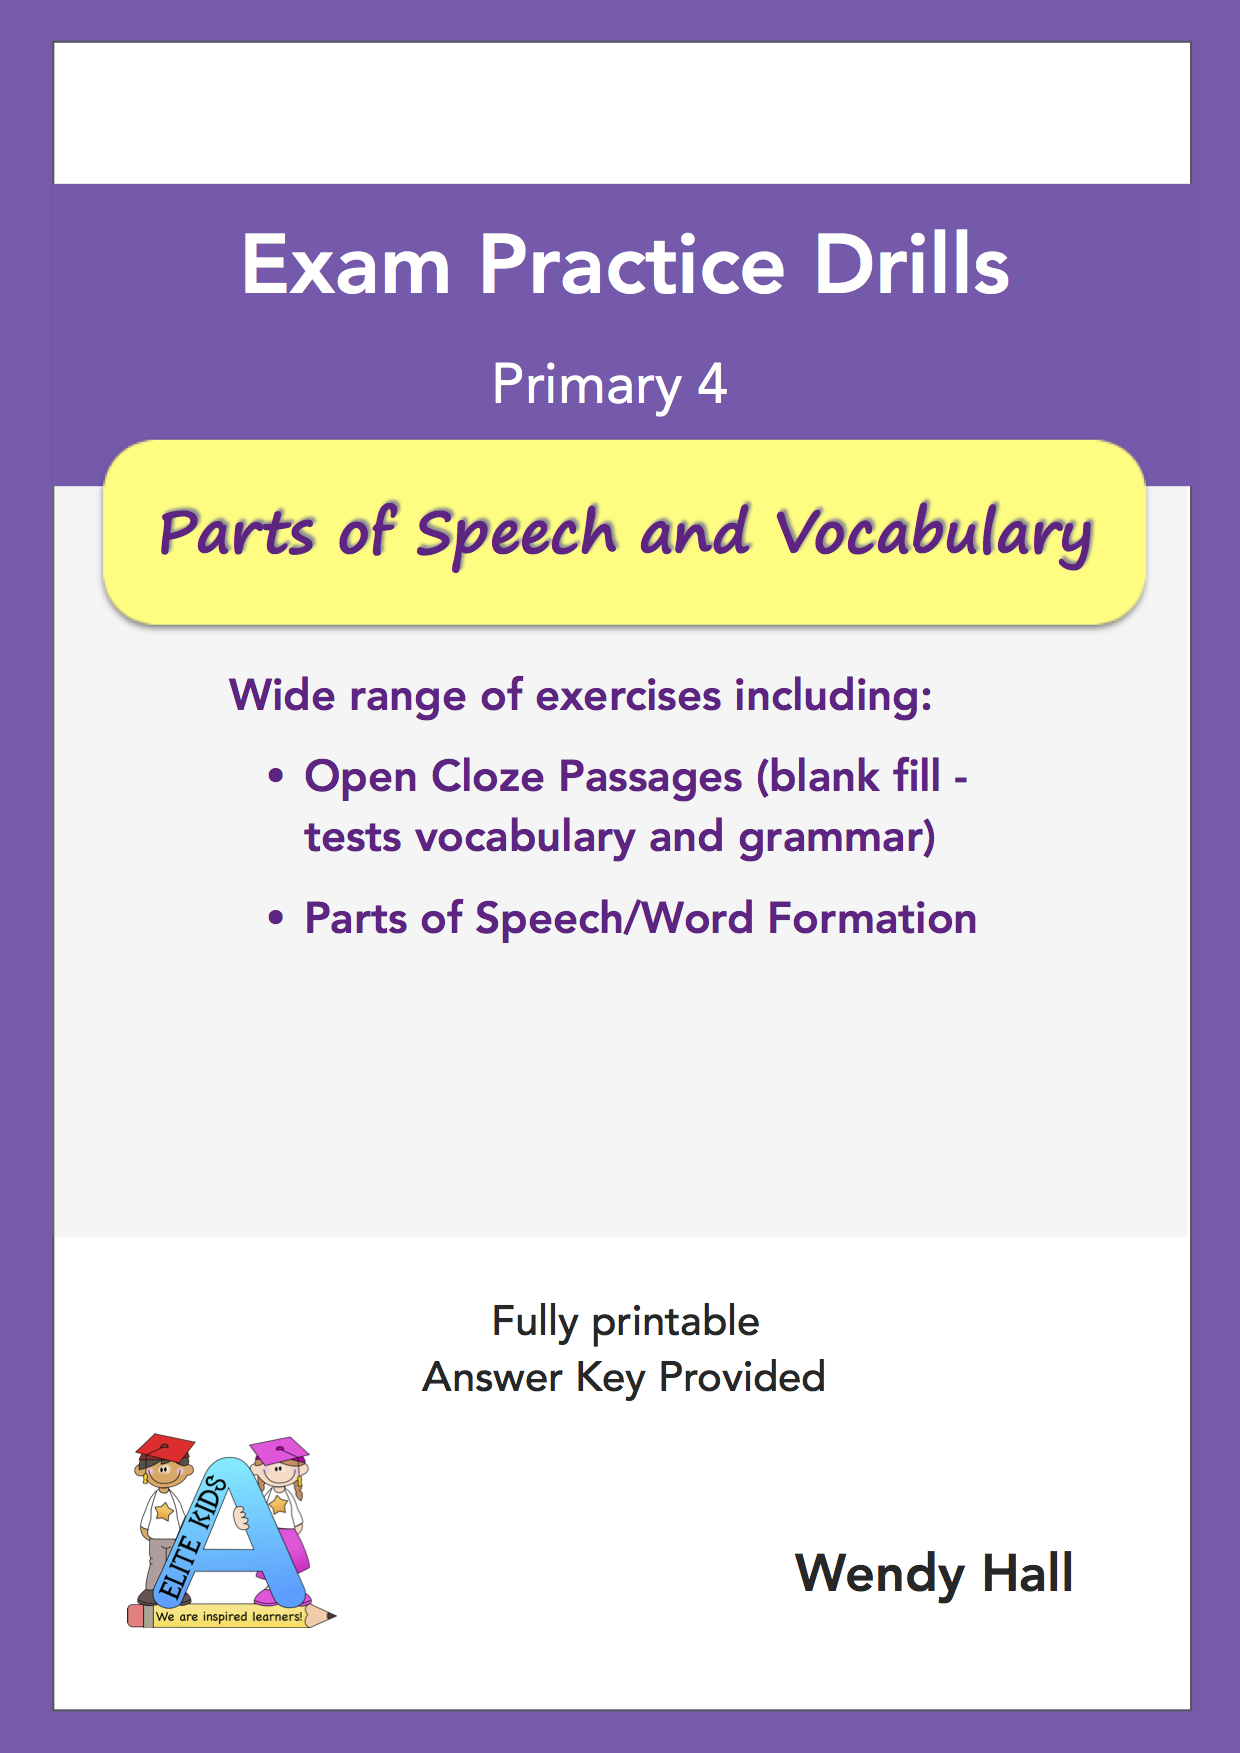 Elite Kids | Exam Practice Drills - Parts of speech and vocabulary - Primary 4